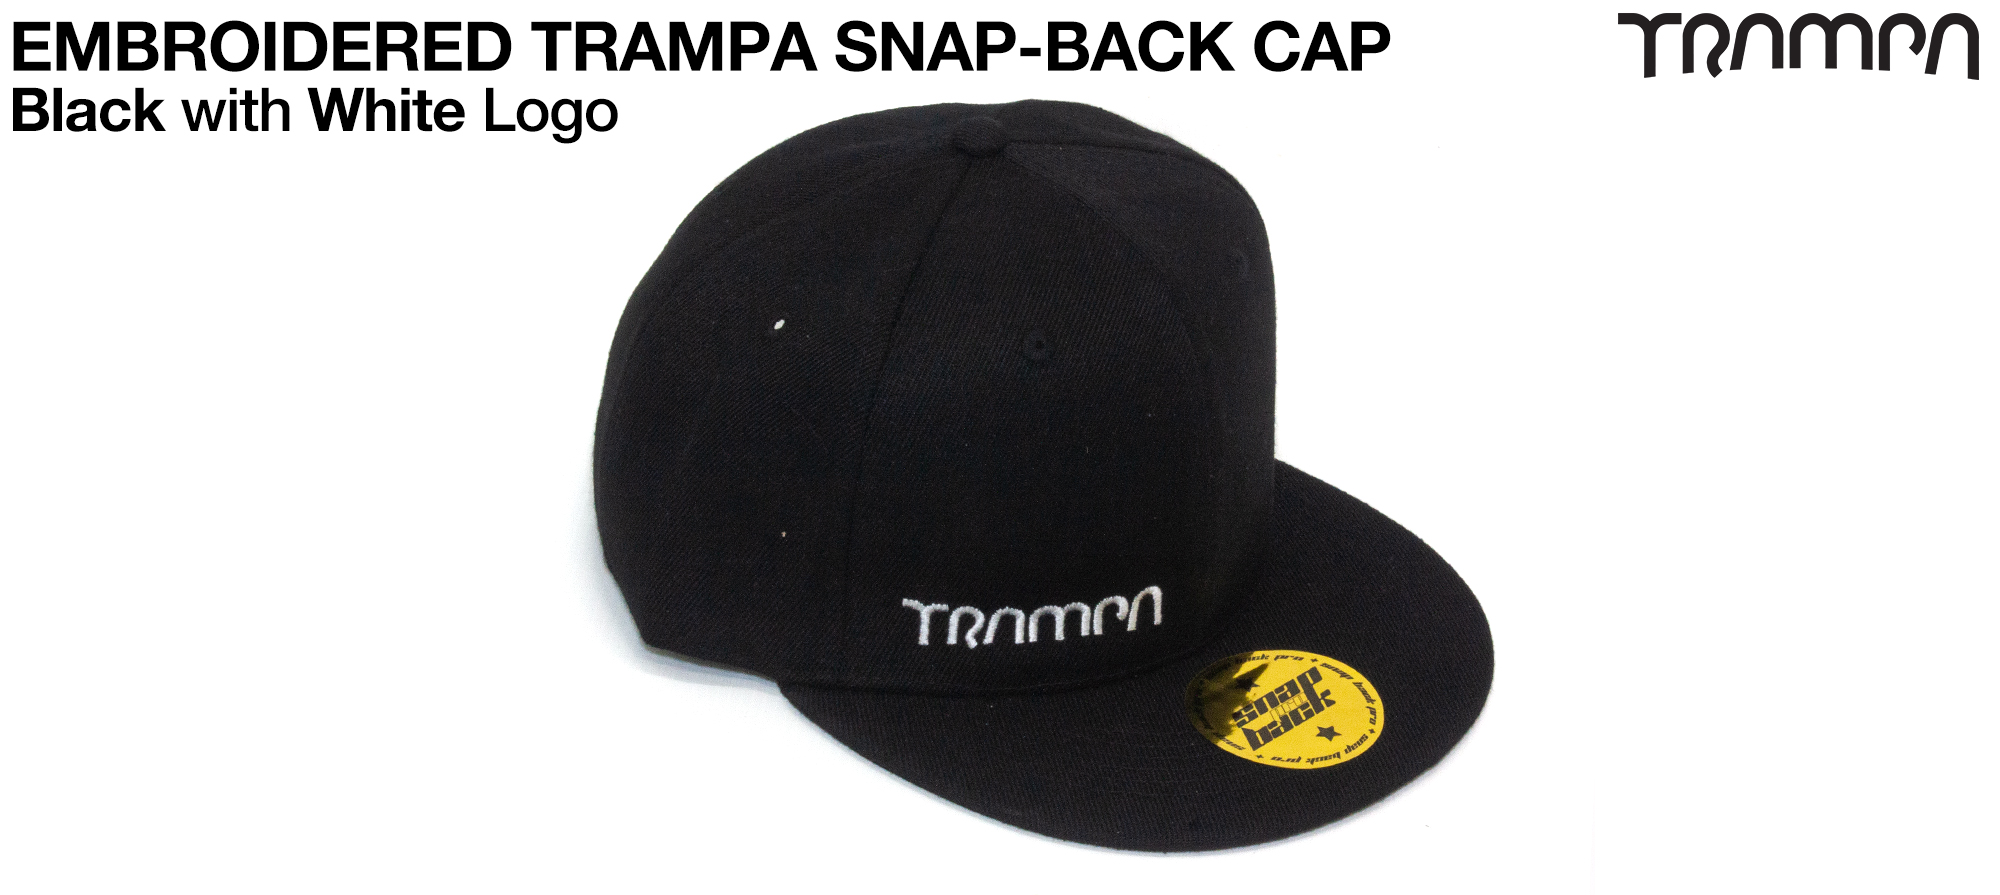 BLACK SNAPBACK Cap with BLACK logo embroidered